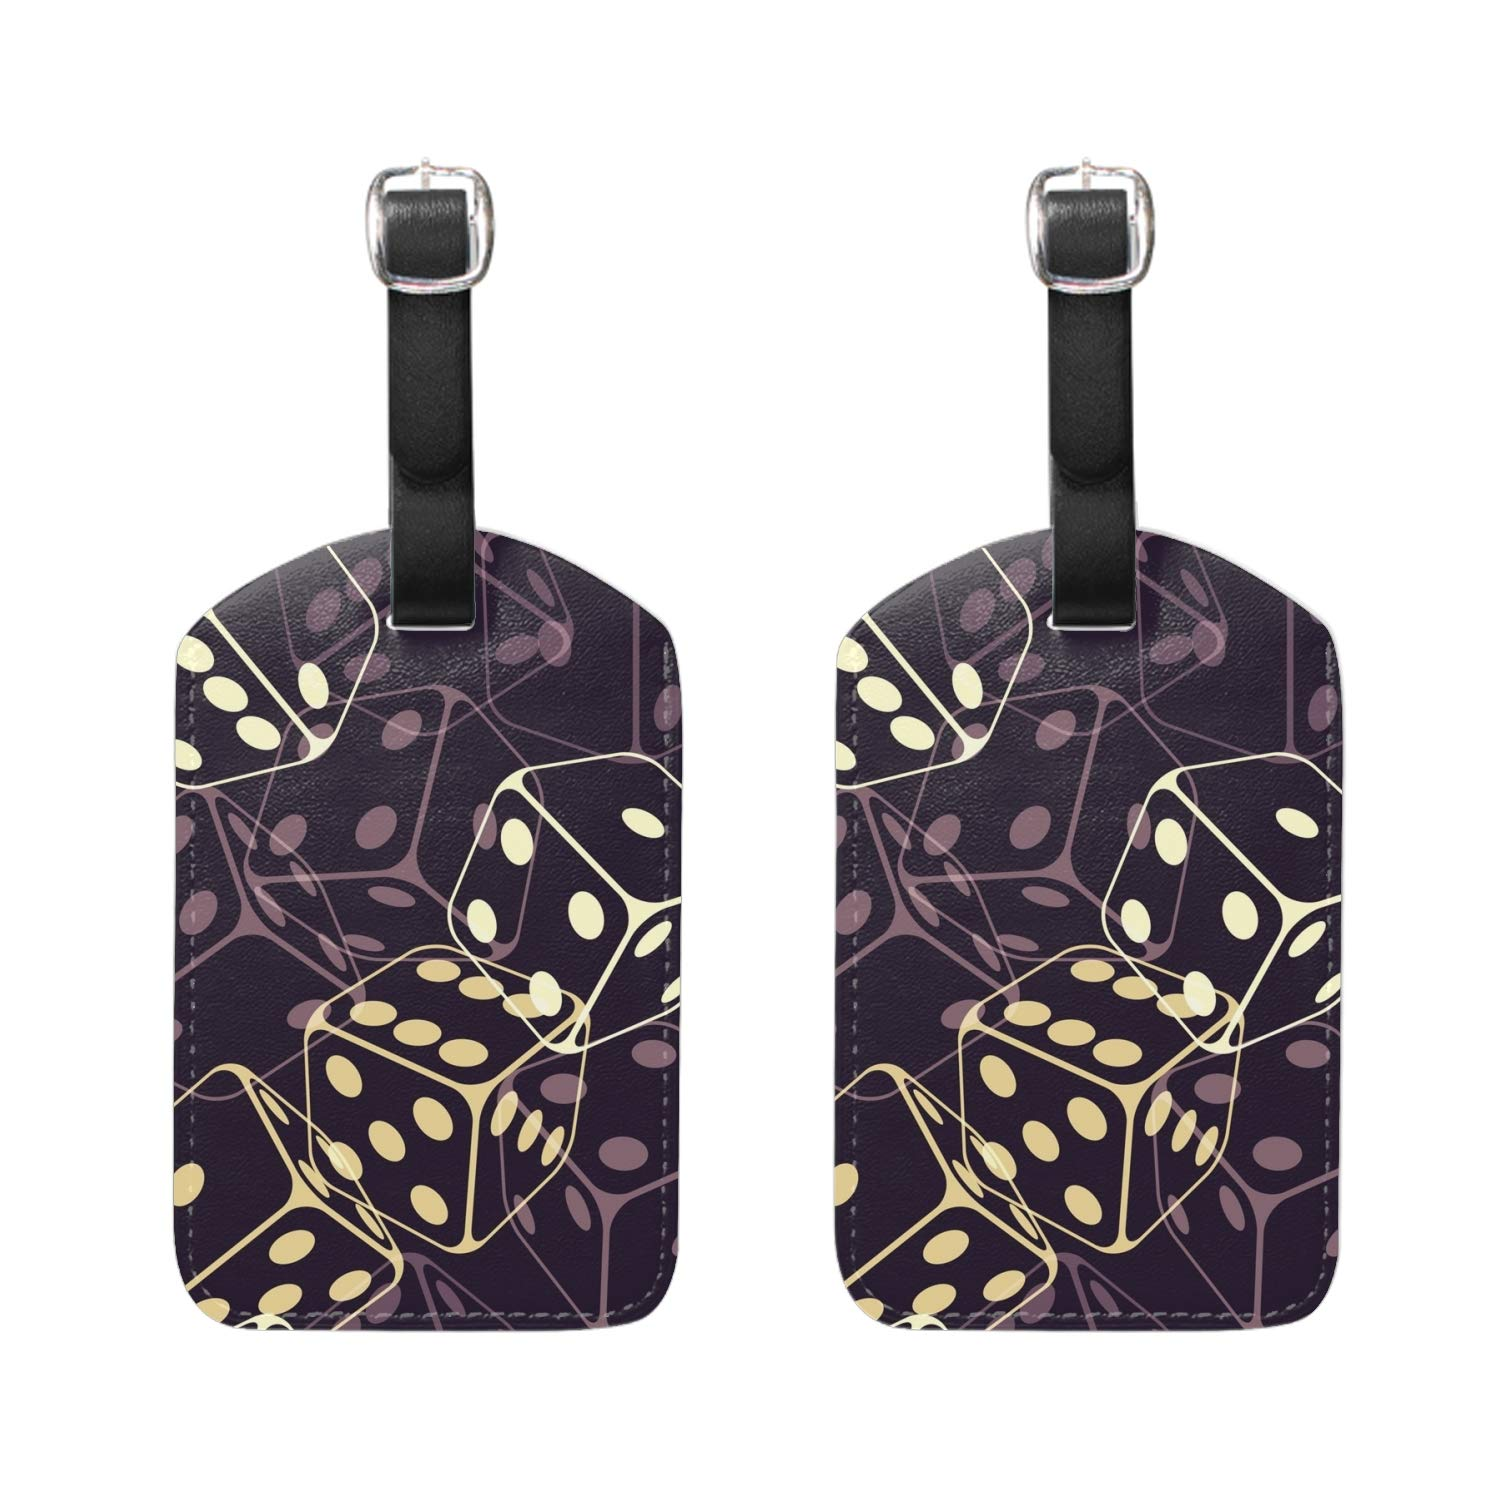 Set of 2 Blossom Of Daffodils Travel Luggage Tags for Suitcases|Baggage Tags PU Leather Luggage Tags|Suitcase Tags